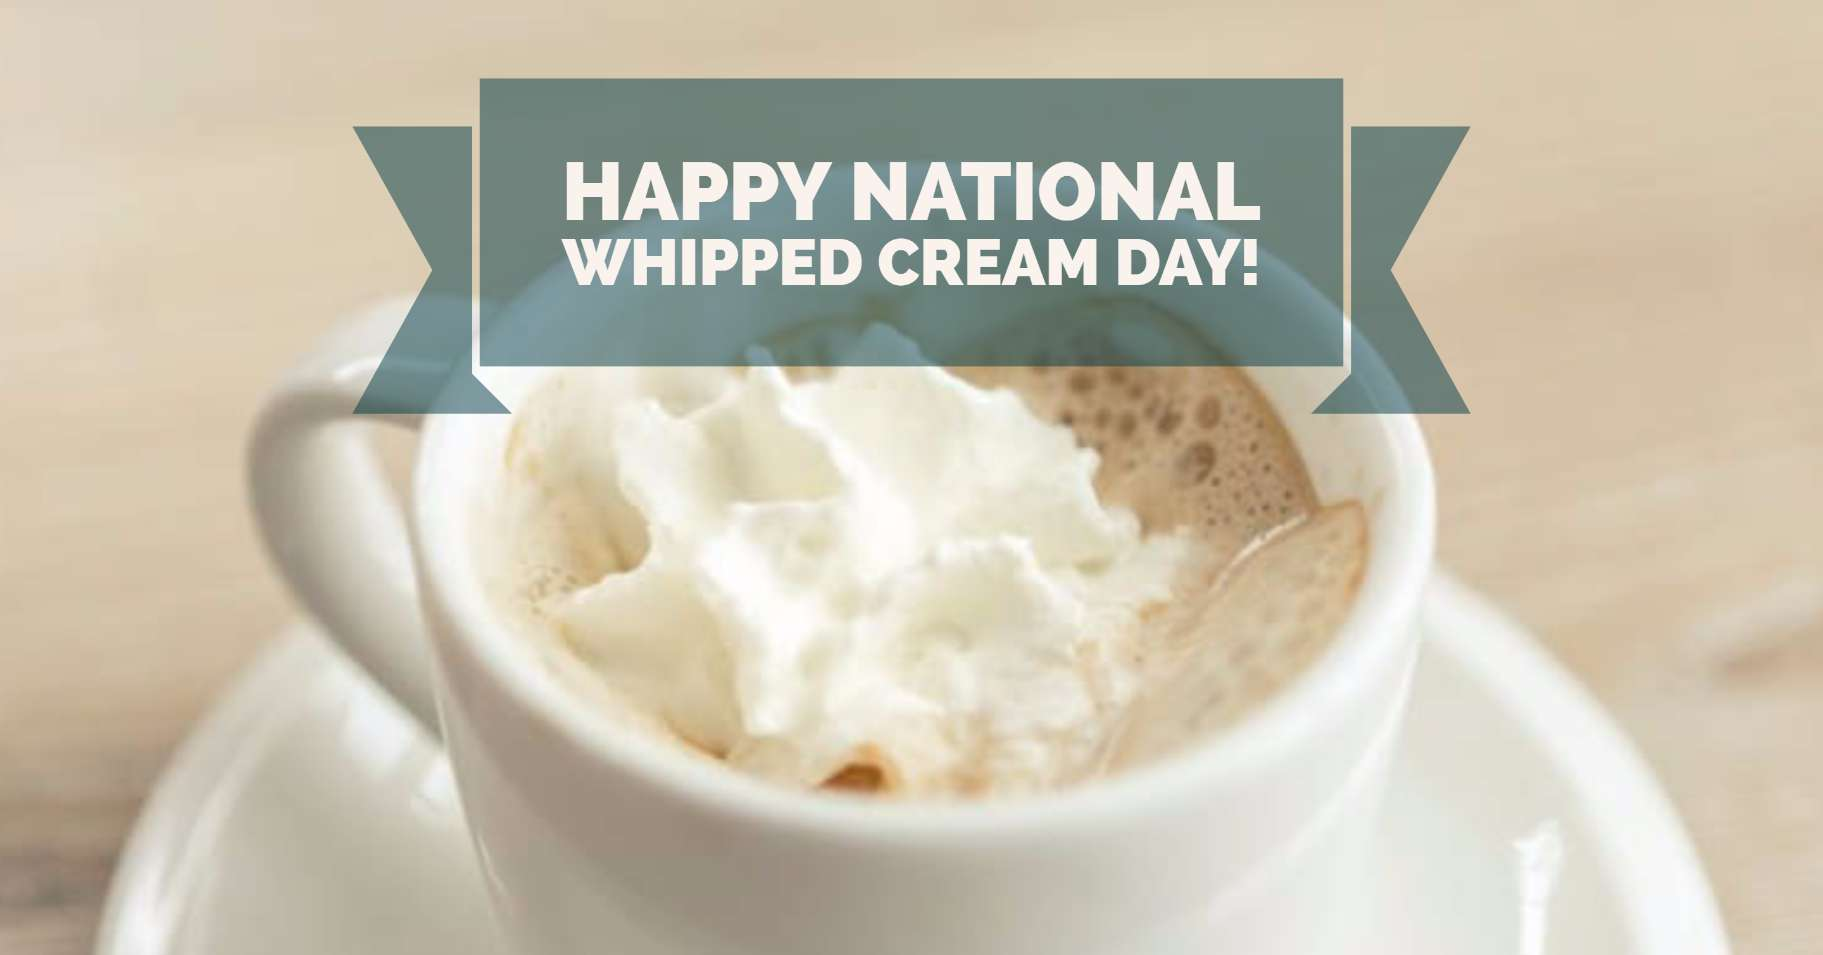 National Whipped Cream Day Wishes Beautiful Image